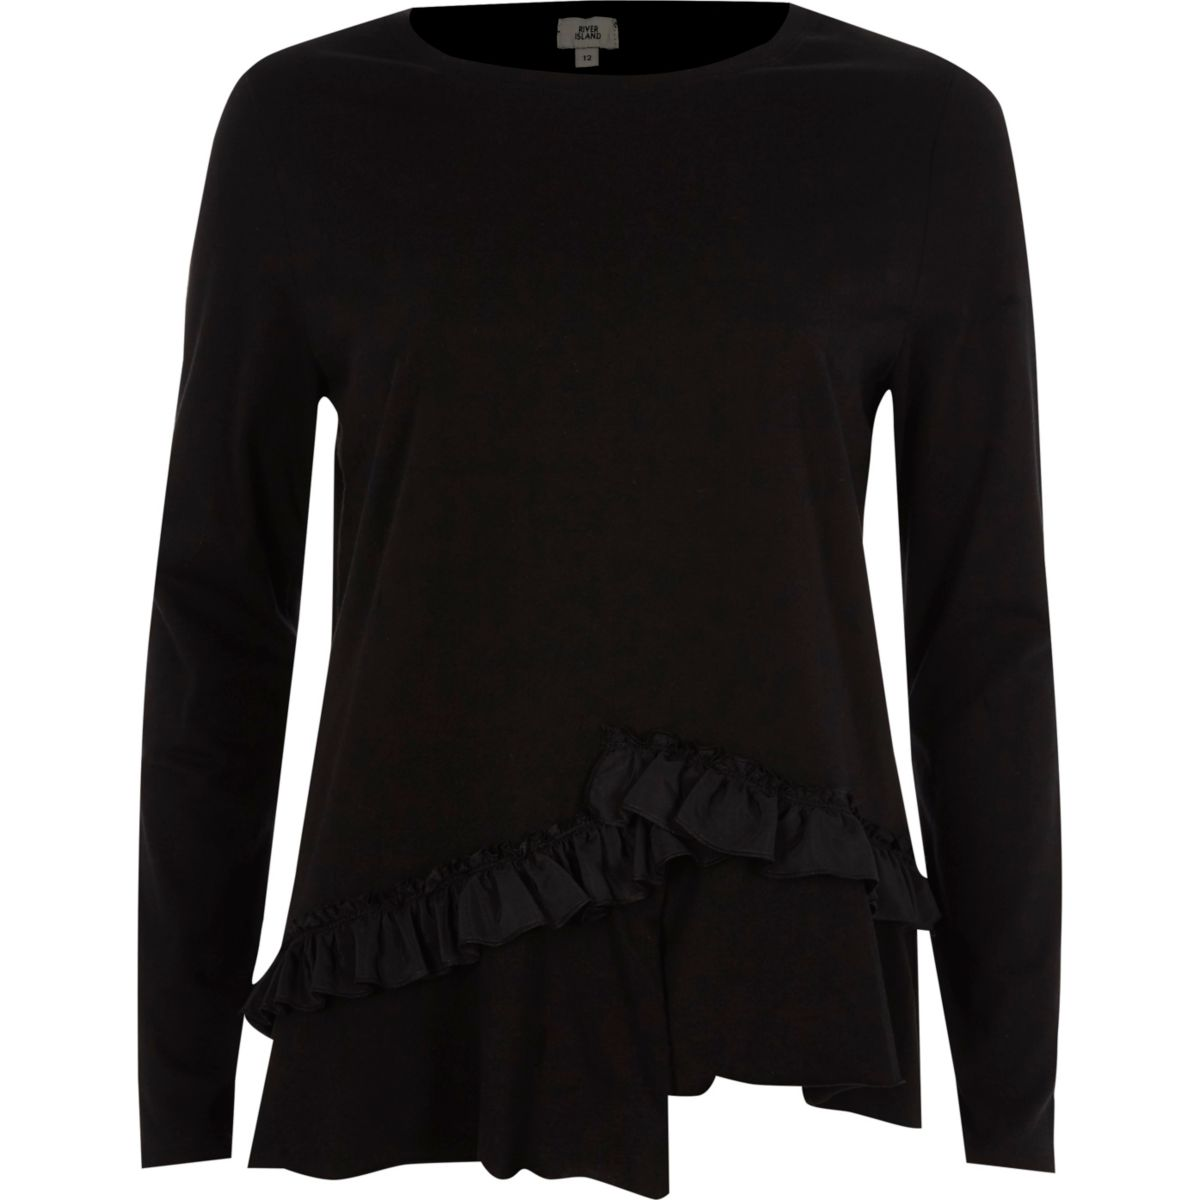 Black asymmetric frill long sleeve T-shirt